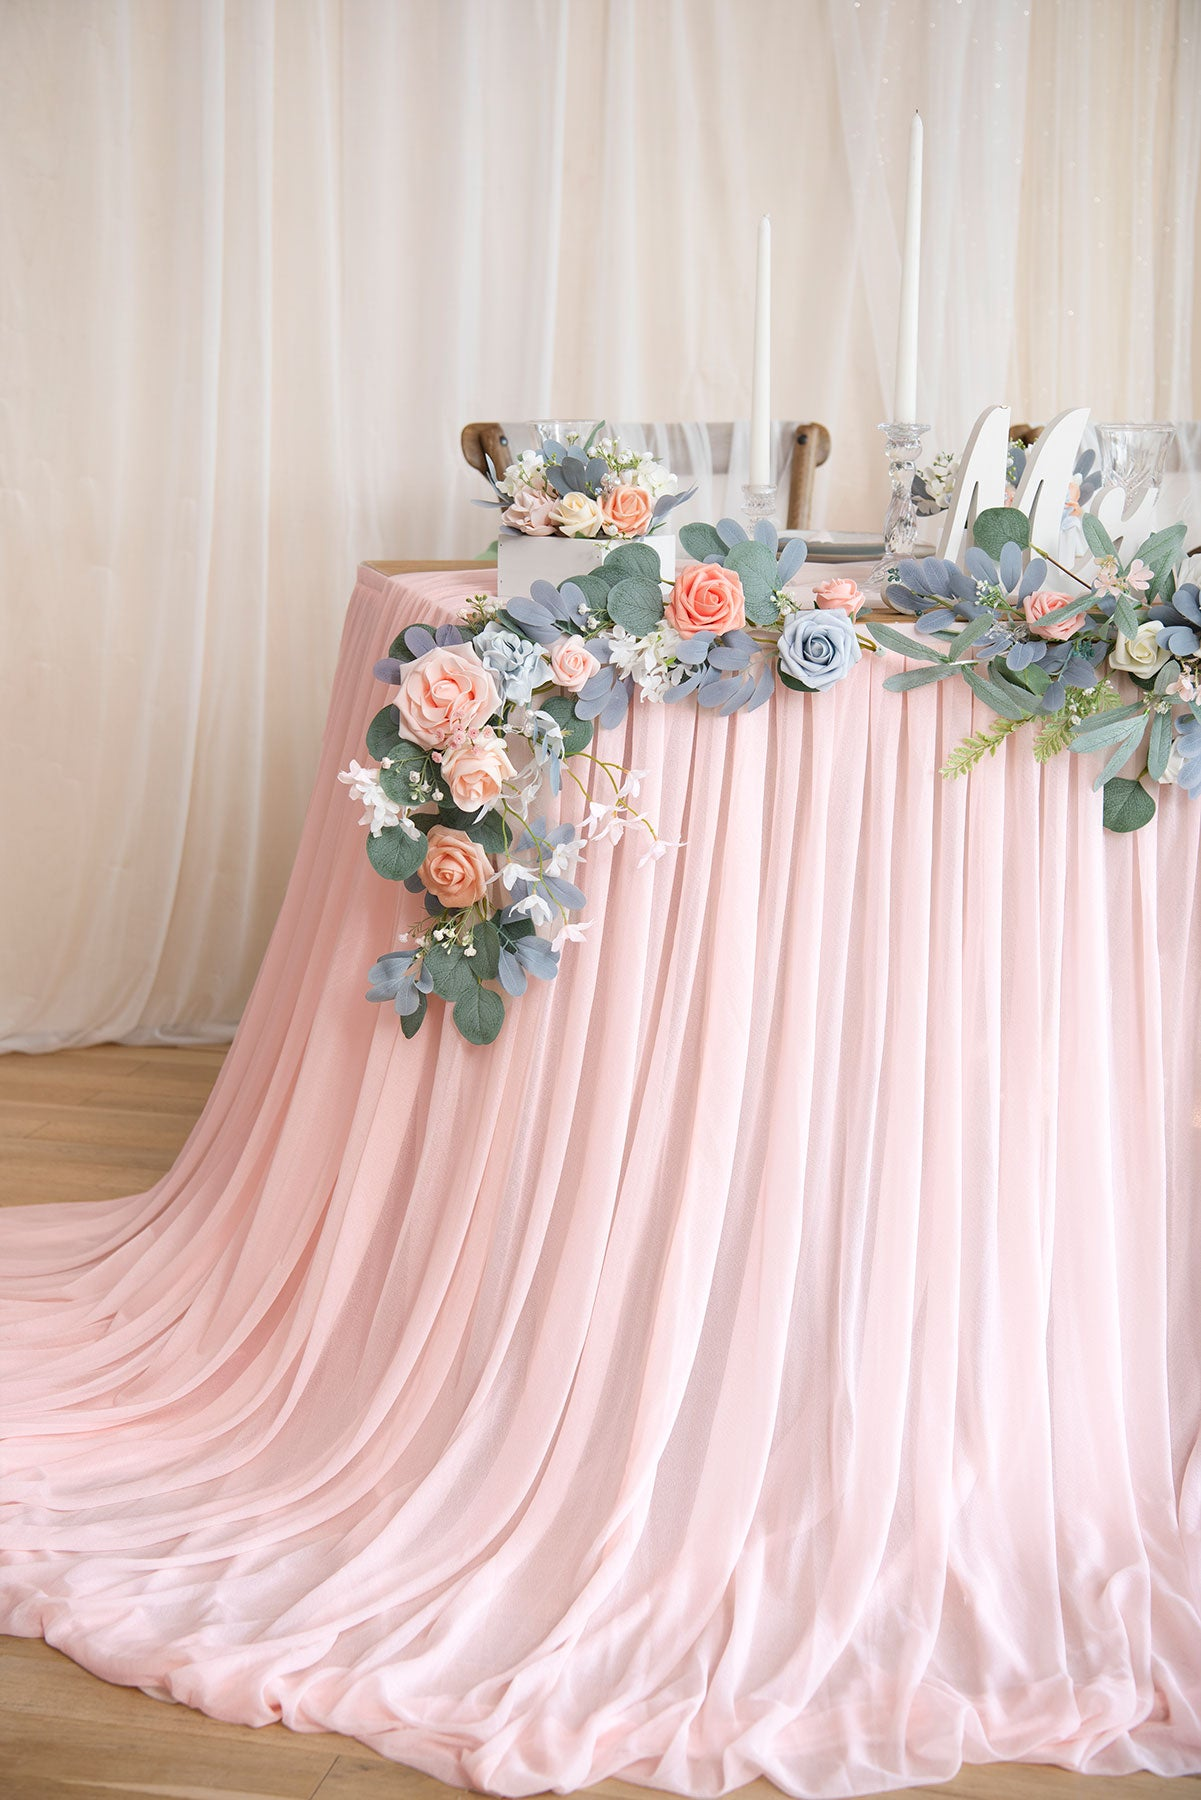 Extra Long Sheer Pooling Table Skirt - 5 Colors